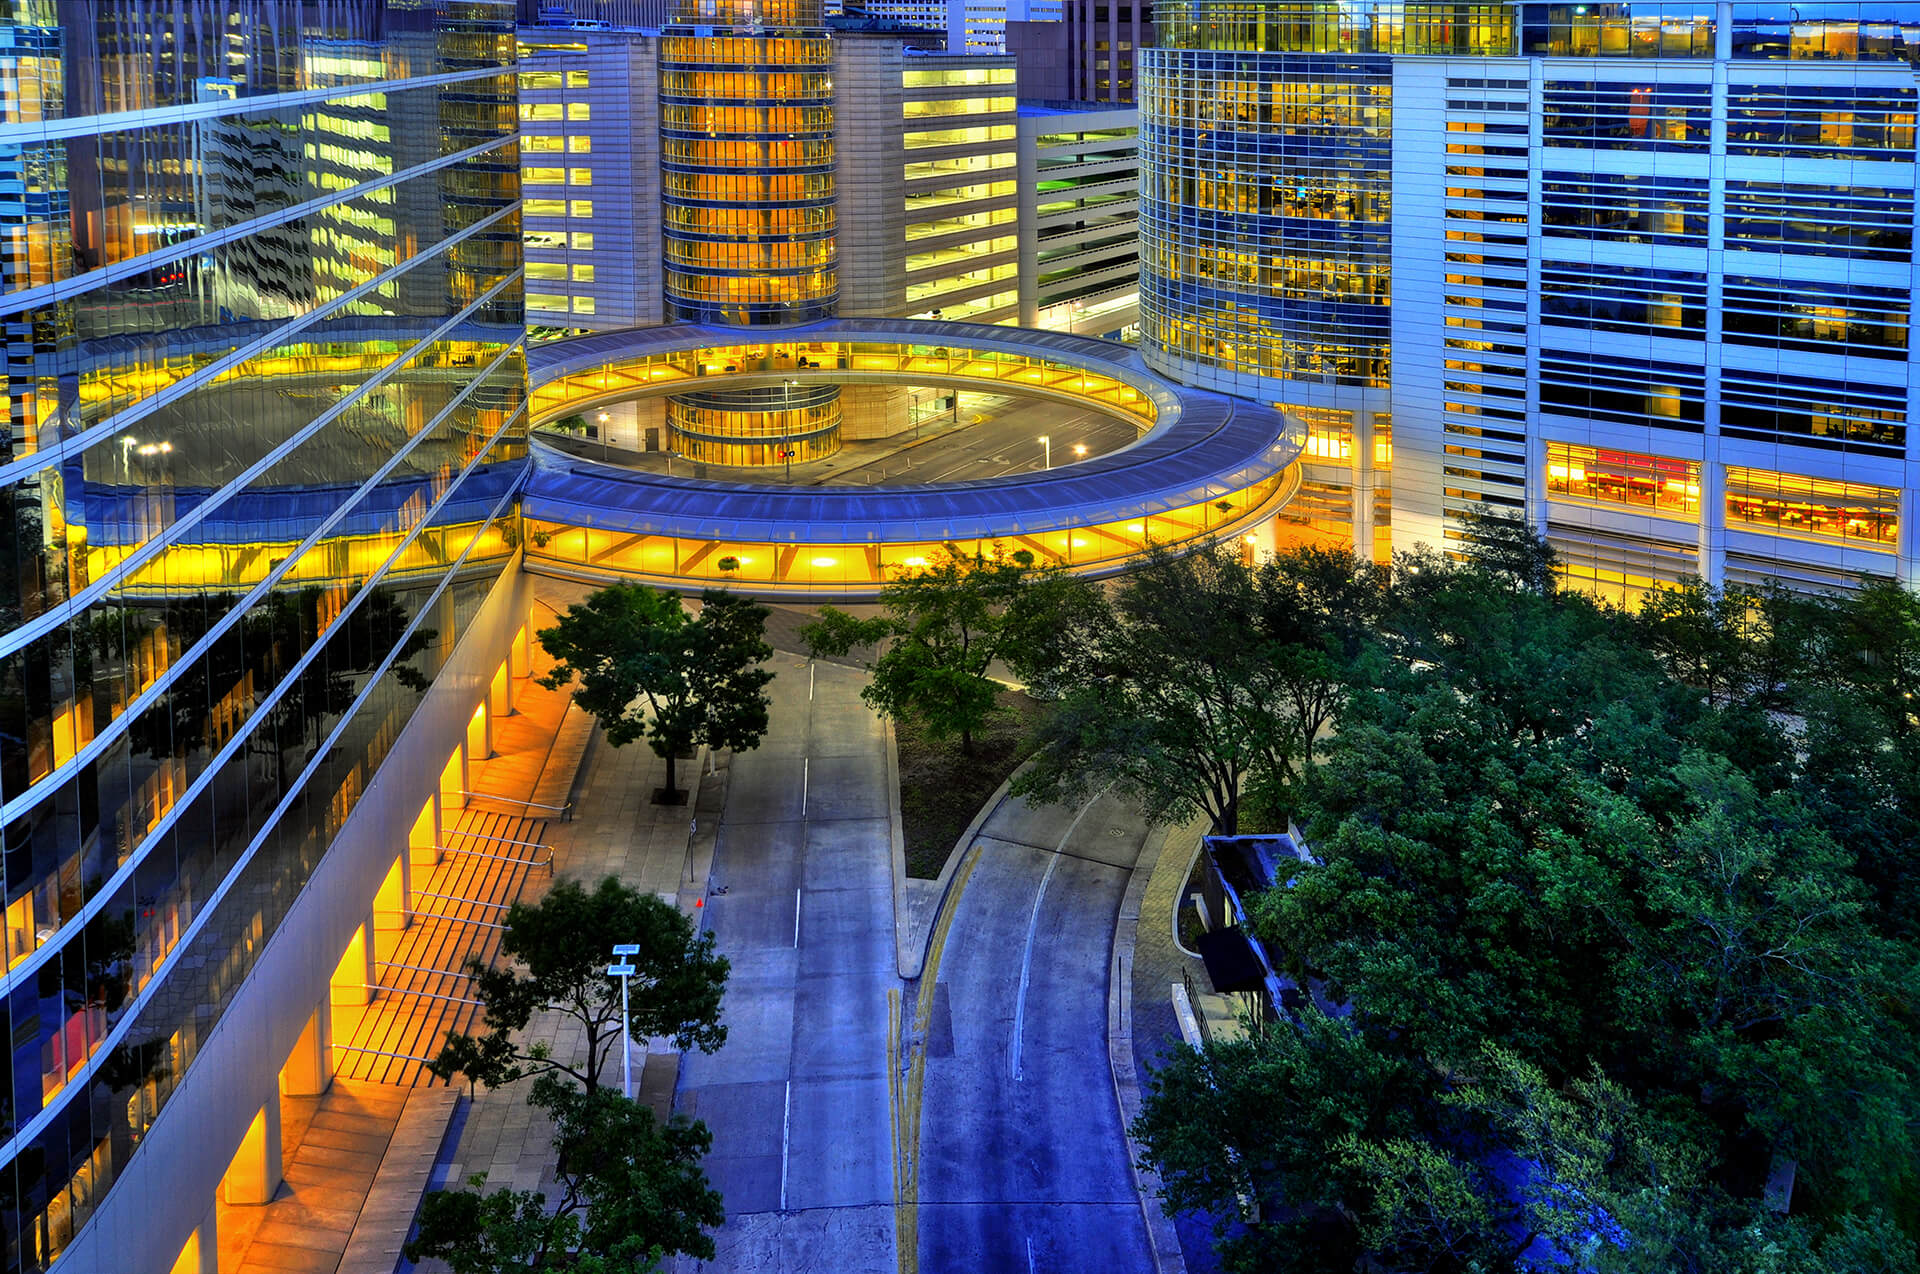 Modern circular architecture, Downtown Houston at night